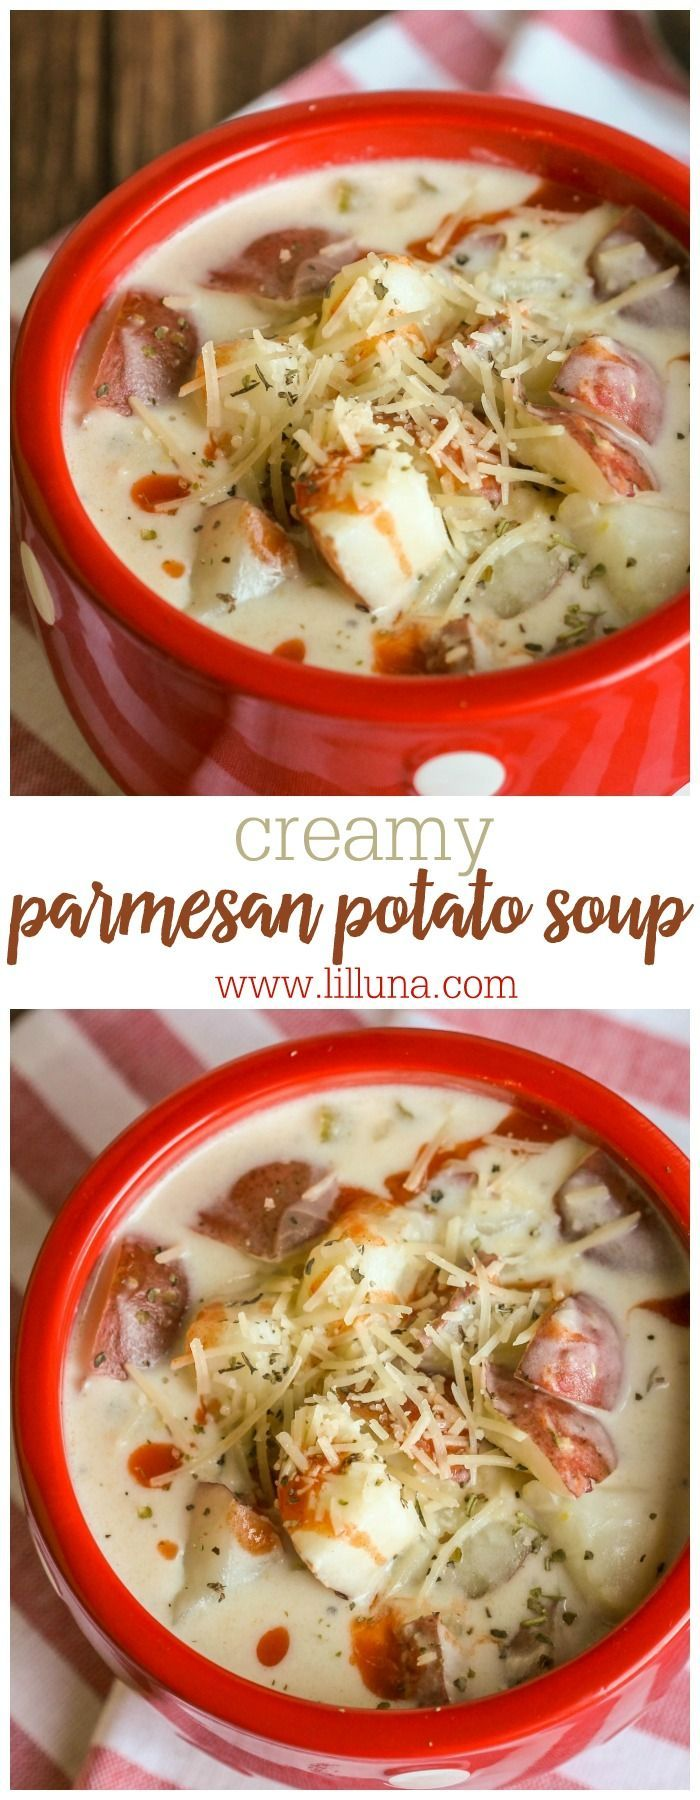 Potato Soup Creamy Parmesan Potato Soup - the perfect fall recipe with so much flavor! It's an easy dinner idea to add to the meal rotation.Creamy Parmesan Potato Soup - the perfect fall recipe with so much flavor! It's an easy dinner idea to add to the meal rotation.